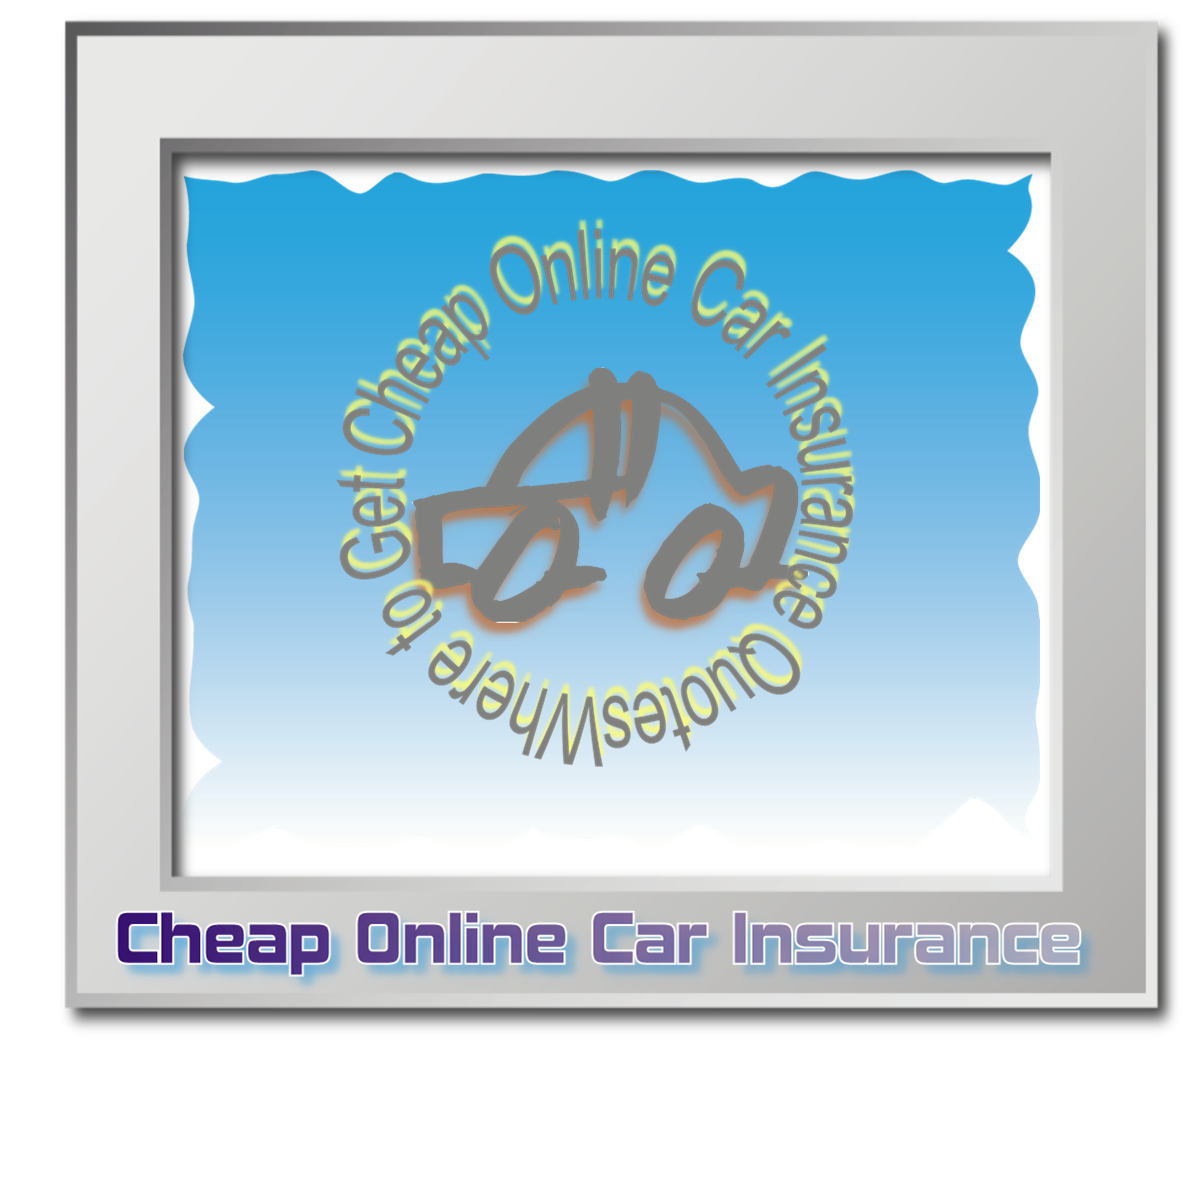 Where To Get Cheap Online Car Insurance Quotes With Images